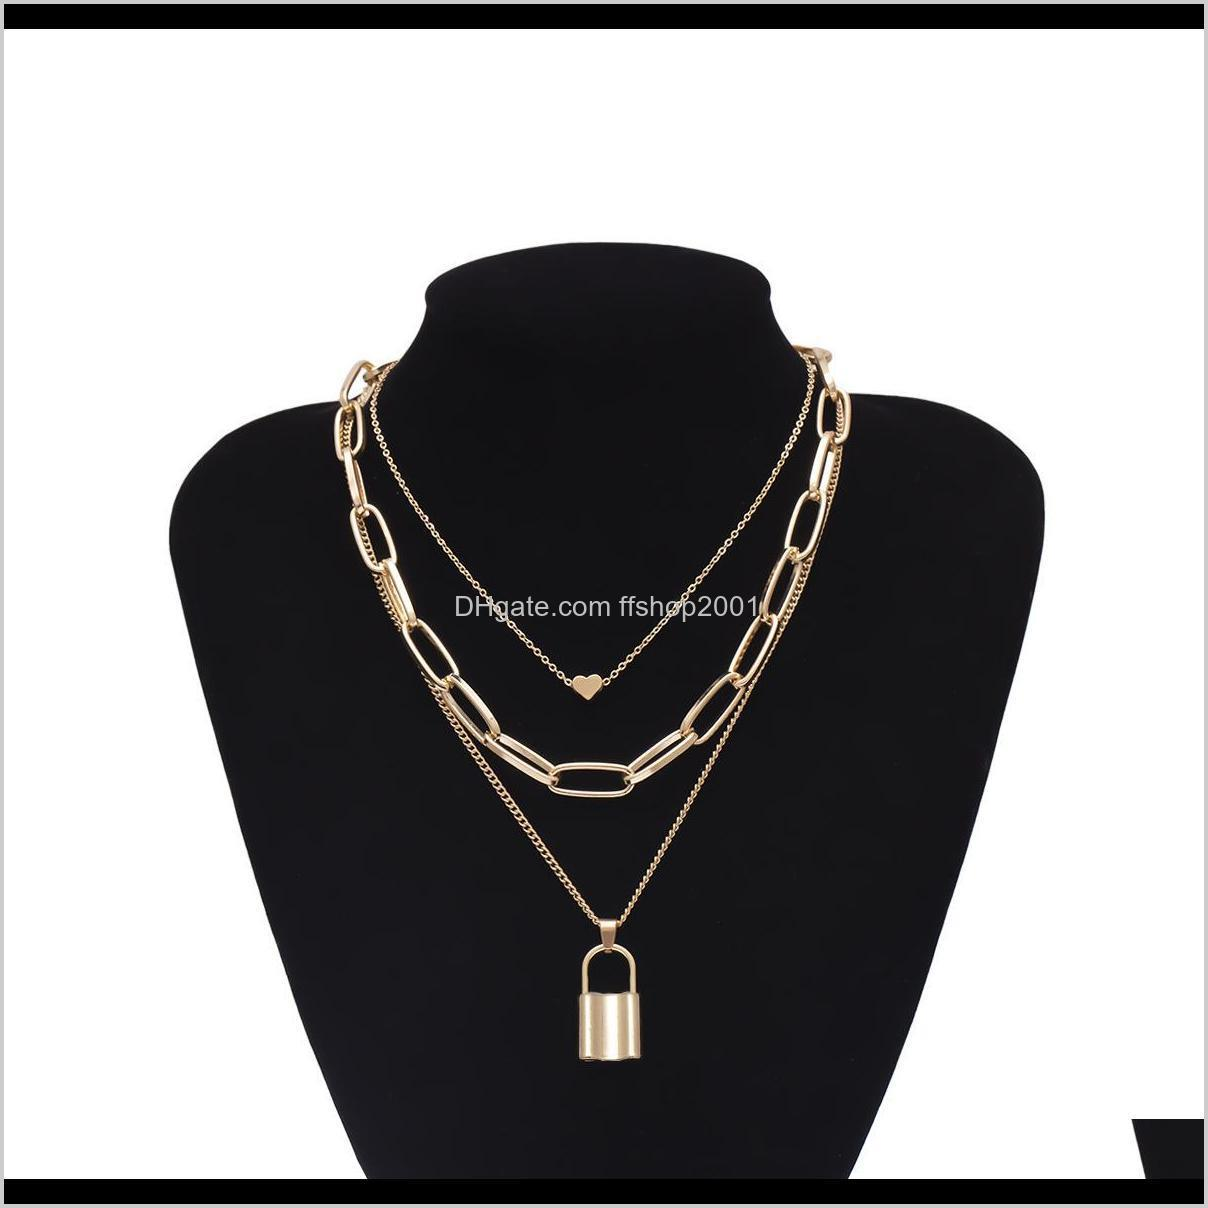 gold chains heart lock necklace chokers multi layer chains collar necklaces women hip hop fashion jewelry will and sandy gift